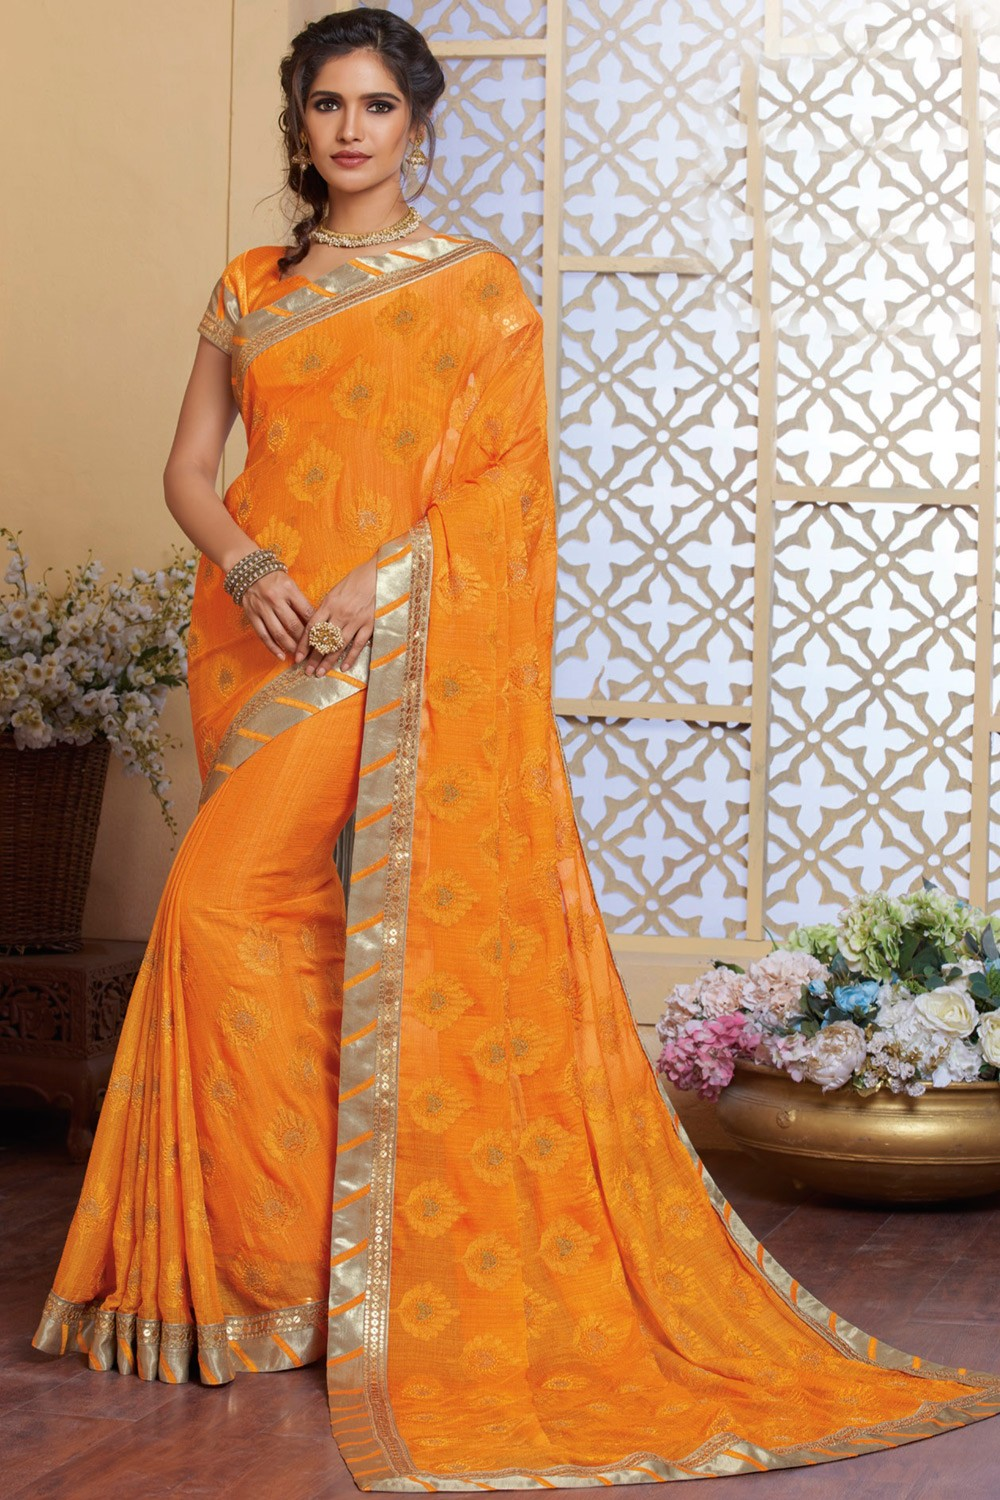 5e75f20252 Paaneri Designer Orange Color Stone Work Embroidery Work Floral Print Silk  Georgette Saree-Product Code-17120483834 - Party Wear - Sarees - Women's